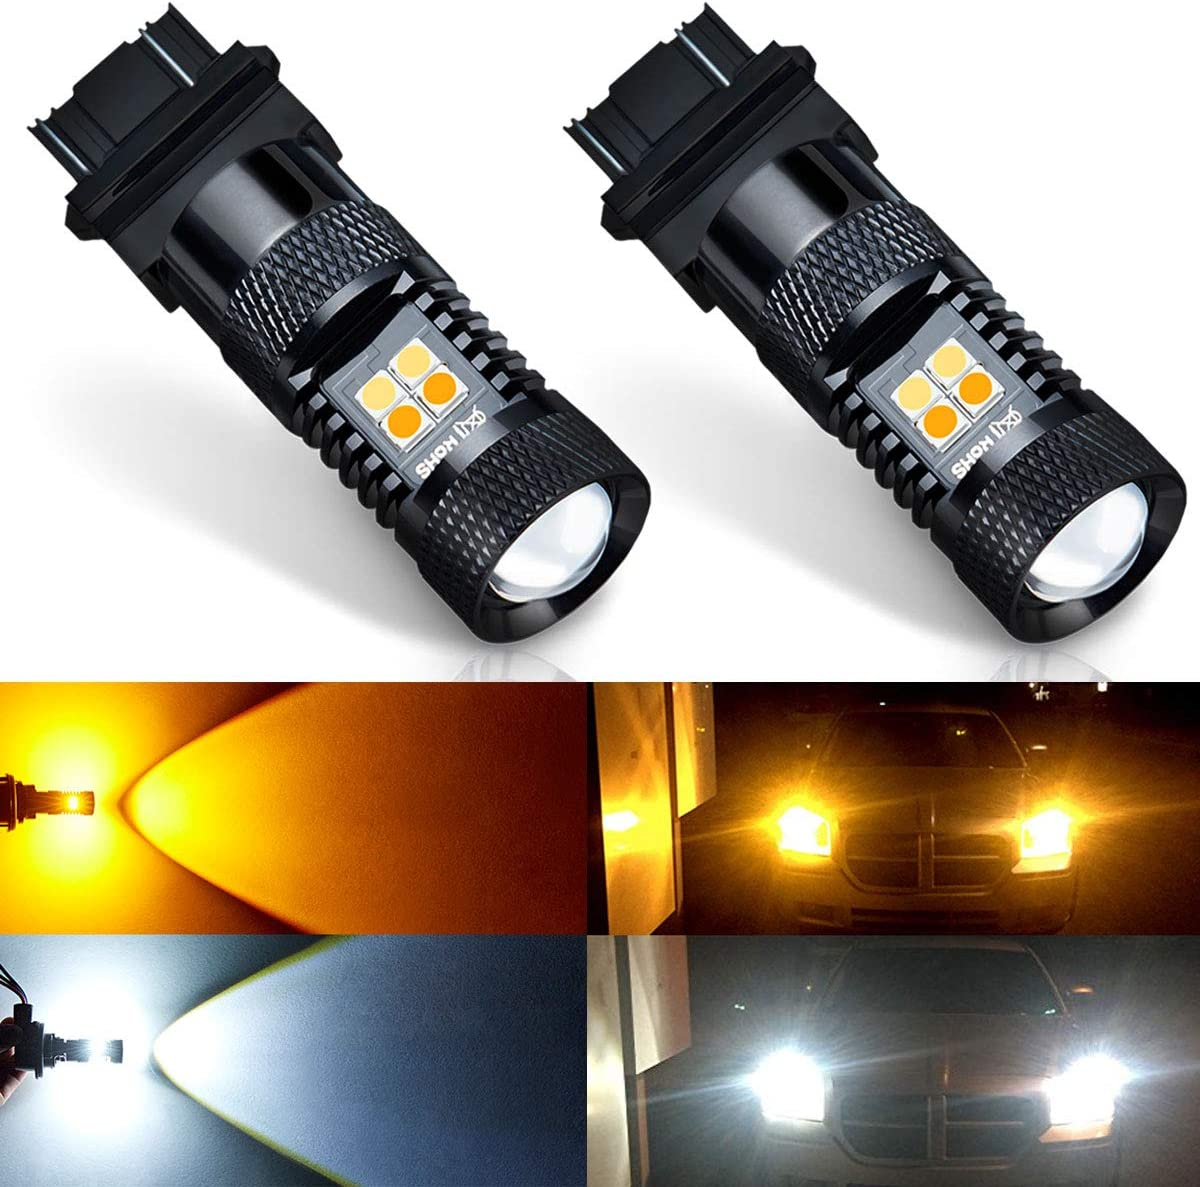 Pack of 2 AUXITO White and Amber Dual Color Switchback 3157 3155 3457 4157 LED Bulbs with Projector 3030 Chipsets for Car Turn Signal Lights Parking Lights,